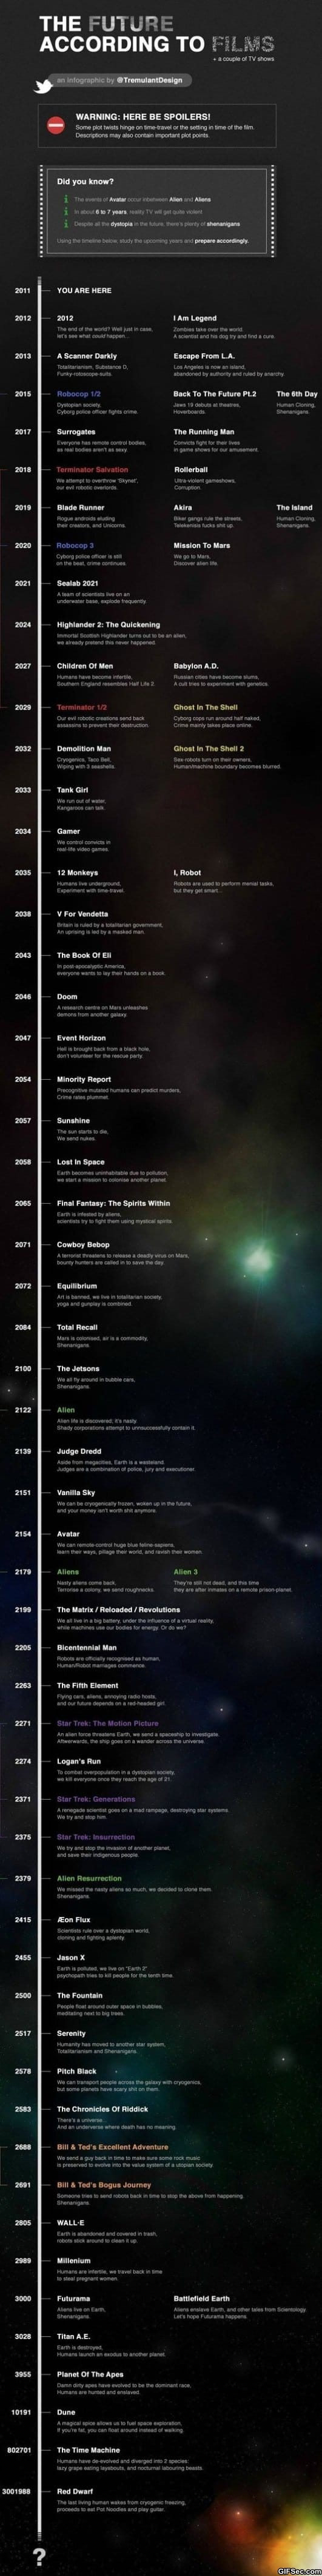 the-future-according-to-films